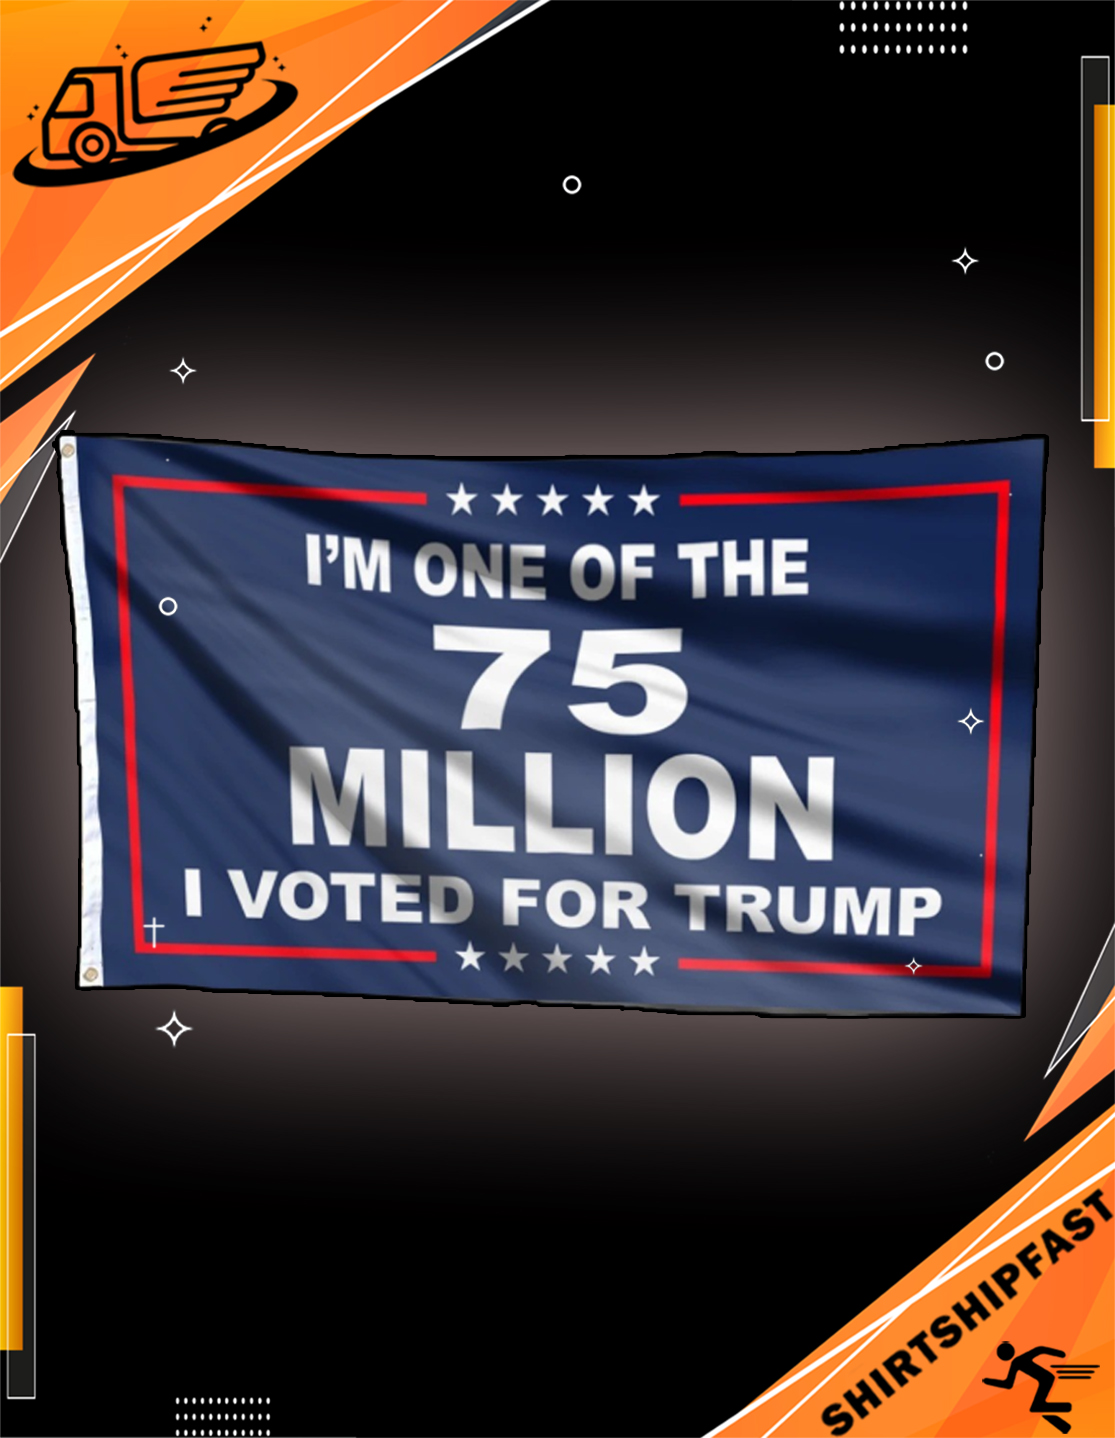 I'm one of the 75 million I voted for Trump flag - Picture 3